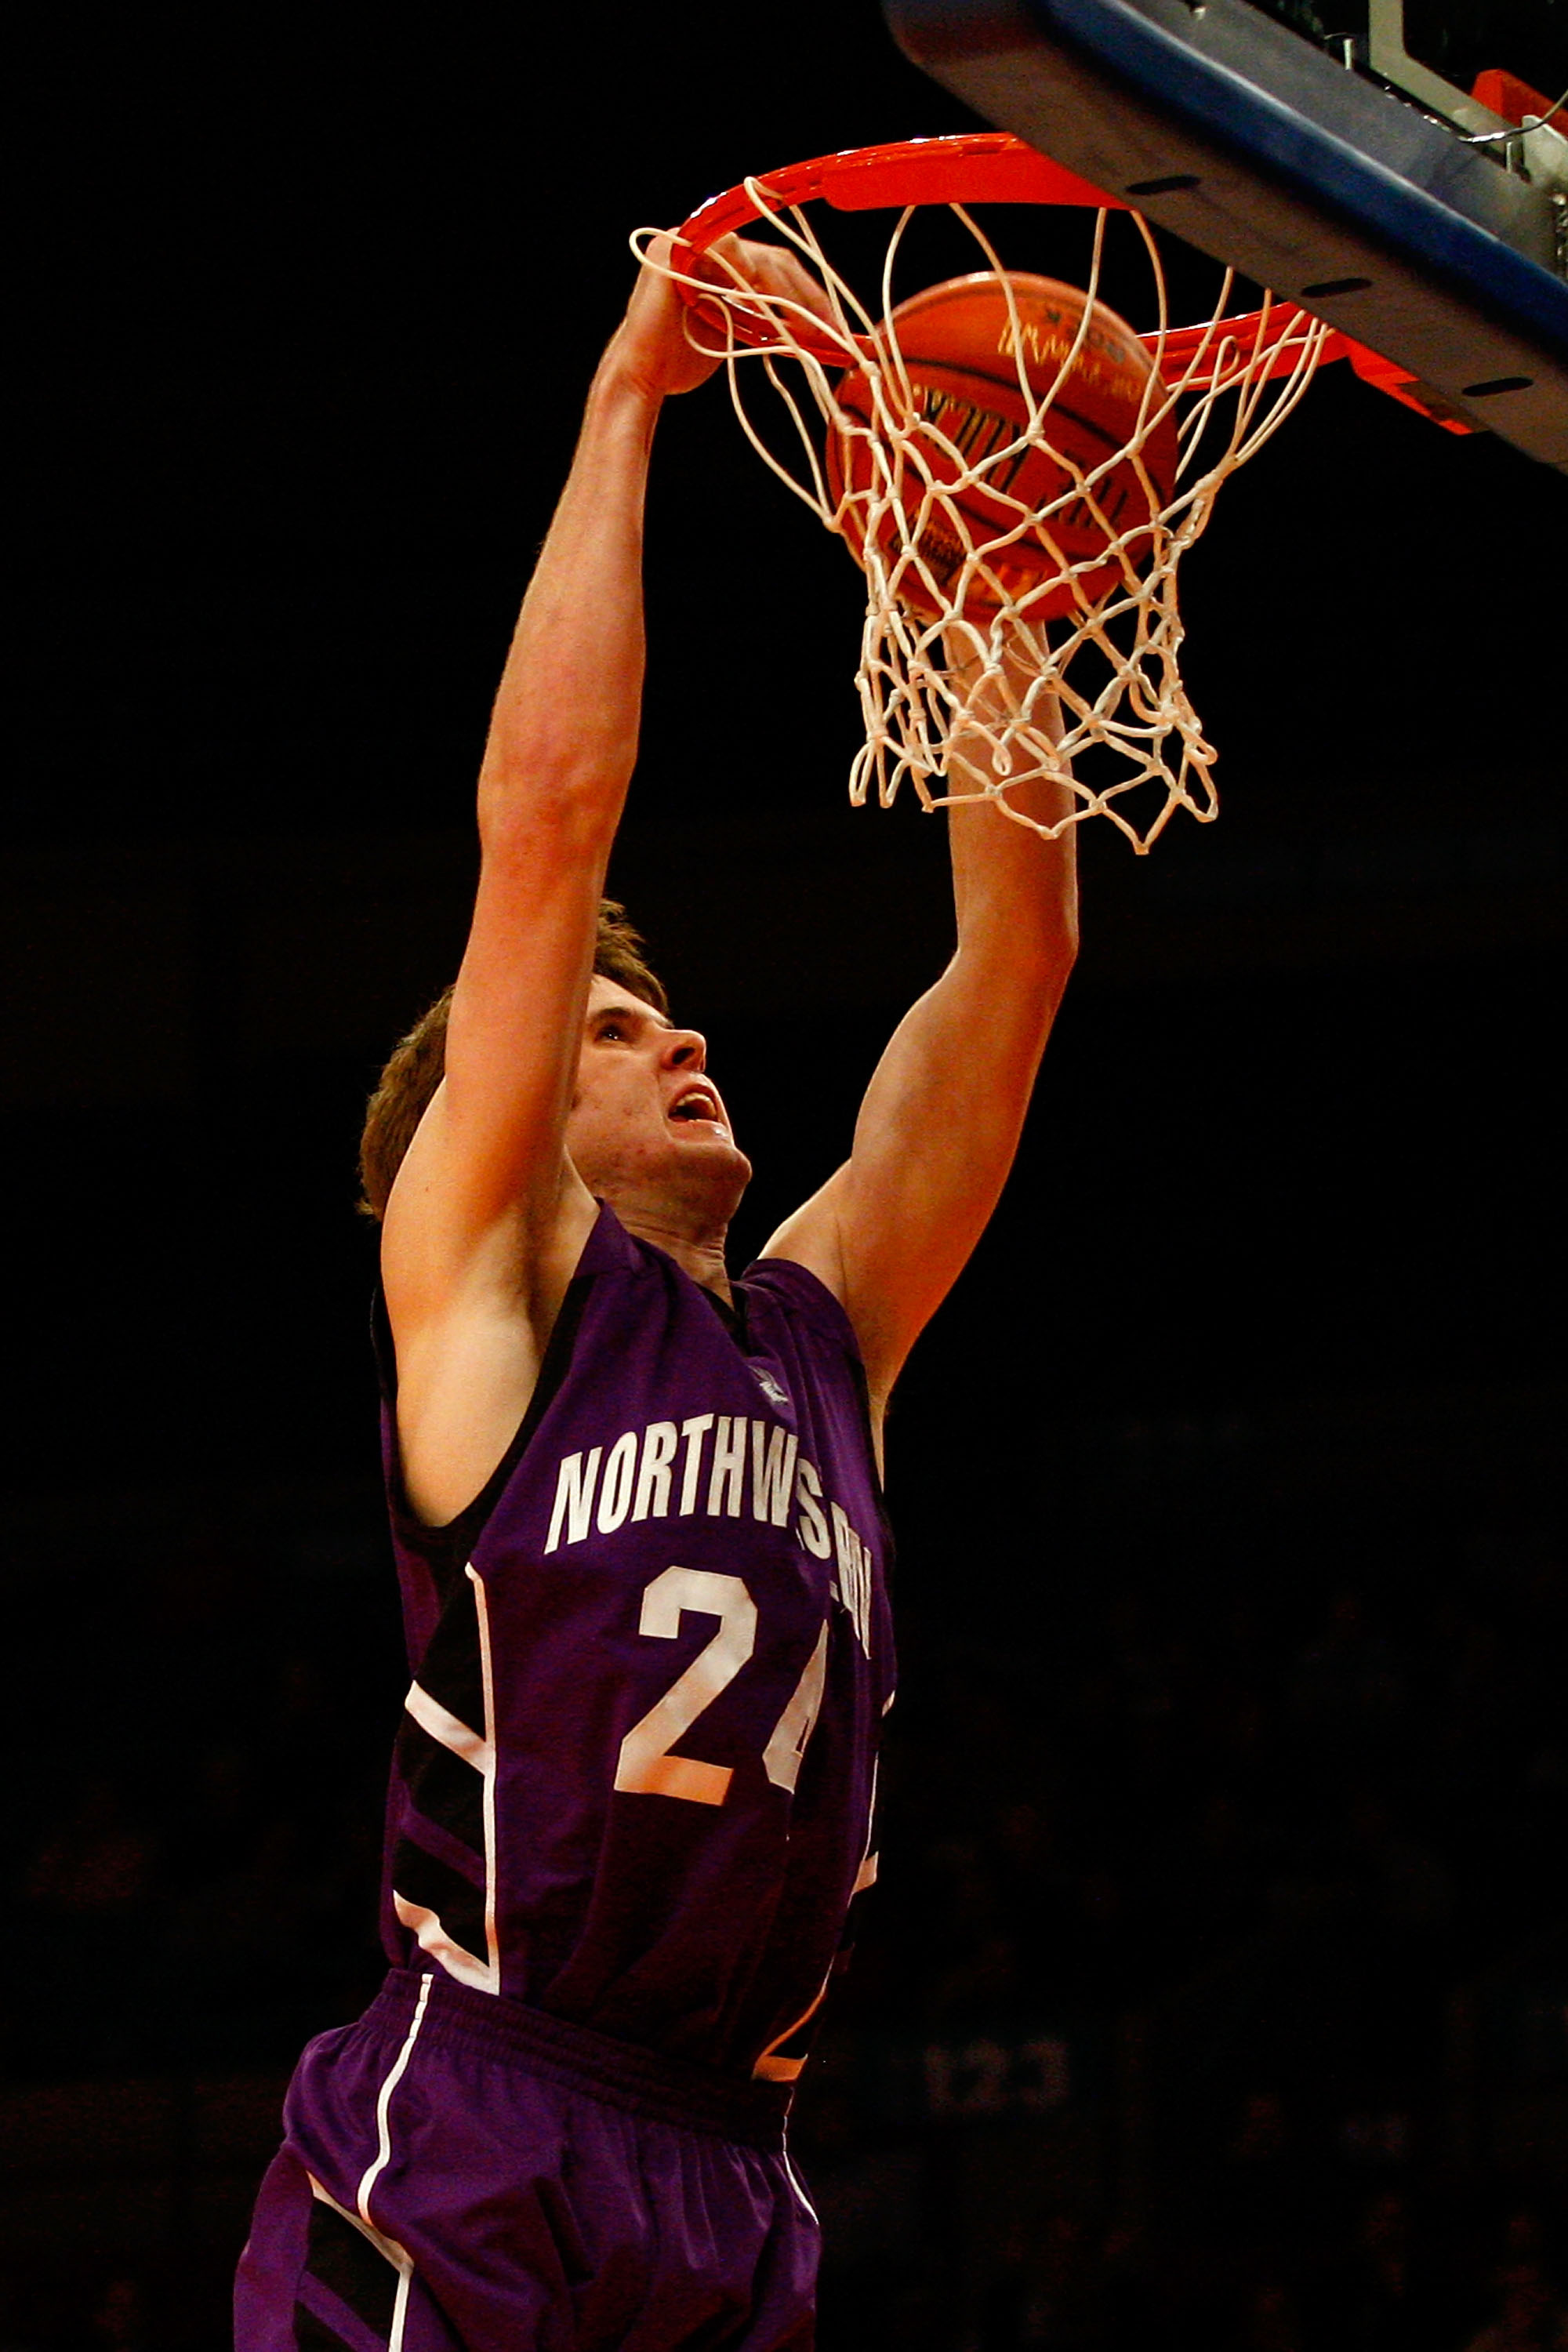 NEW YORK, NY - DECEMBER 20:  John Shurna #24 of the Northwestern Wildcats dunks against the St. Francis Terriers during the Madison Square Garden Holiday Festival at Madison Square Garden on December 20, 2010 in New York City.  (Photo by Chris Chambers/Ge